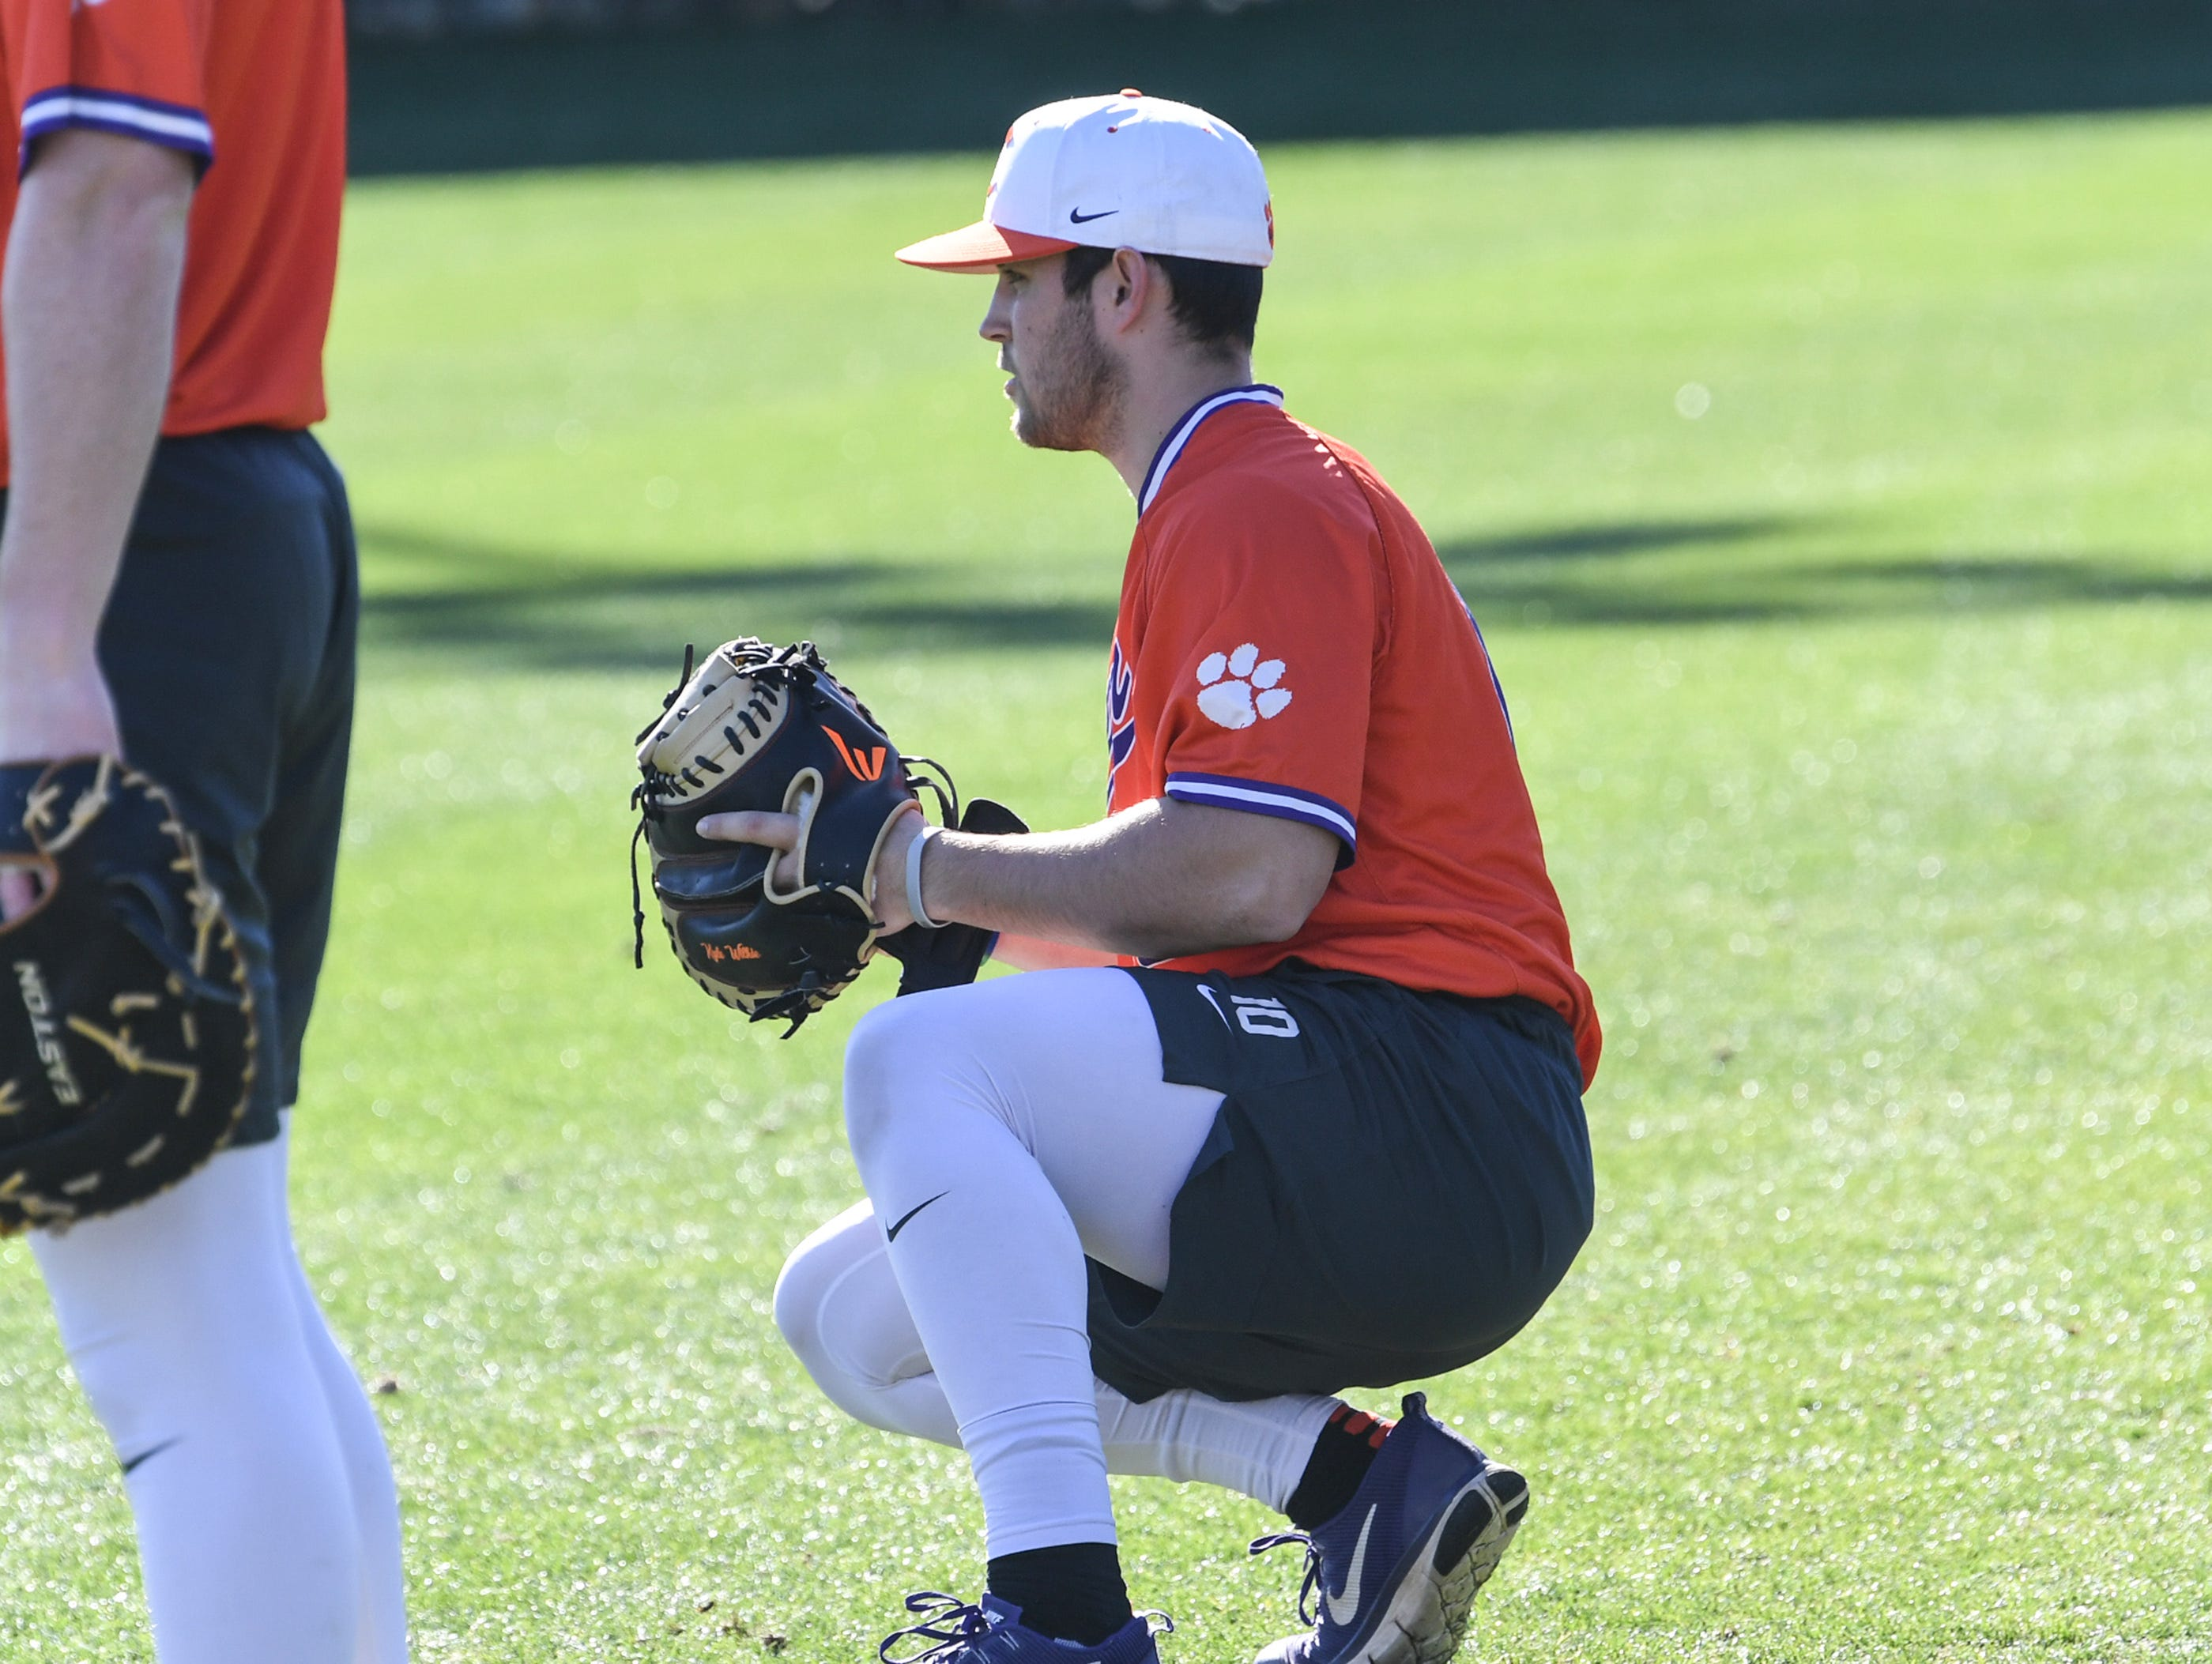 Clemson catcher Kyle Wilkie warms up with teammates during practice at Doug Kingsmore Stadium in Clemson Friday.